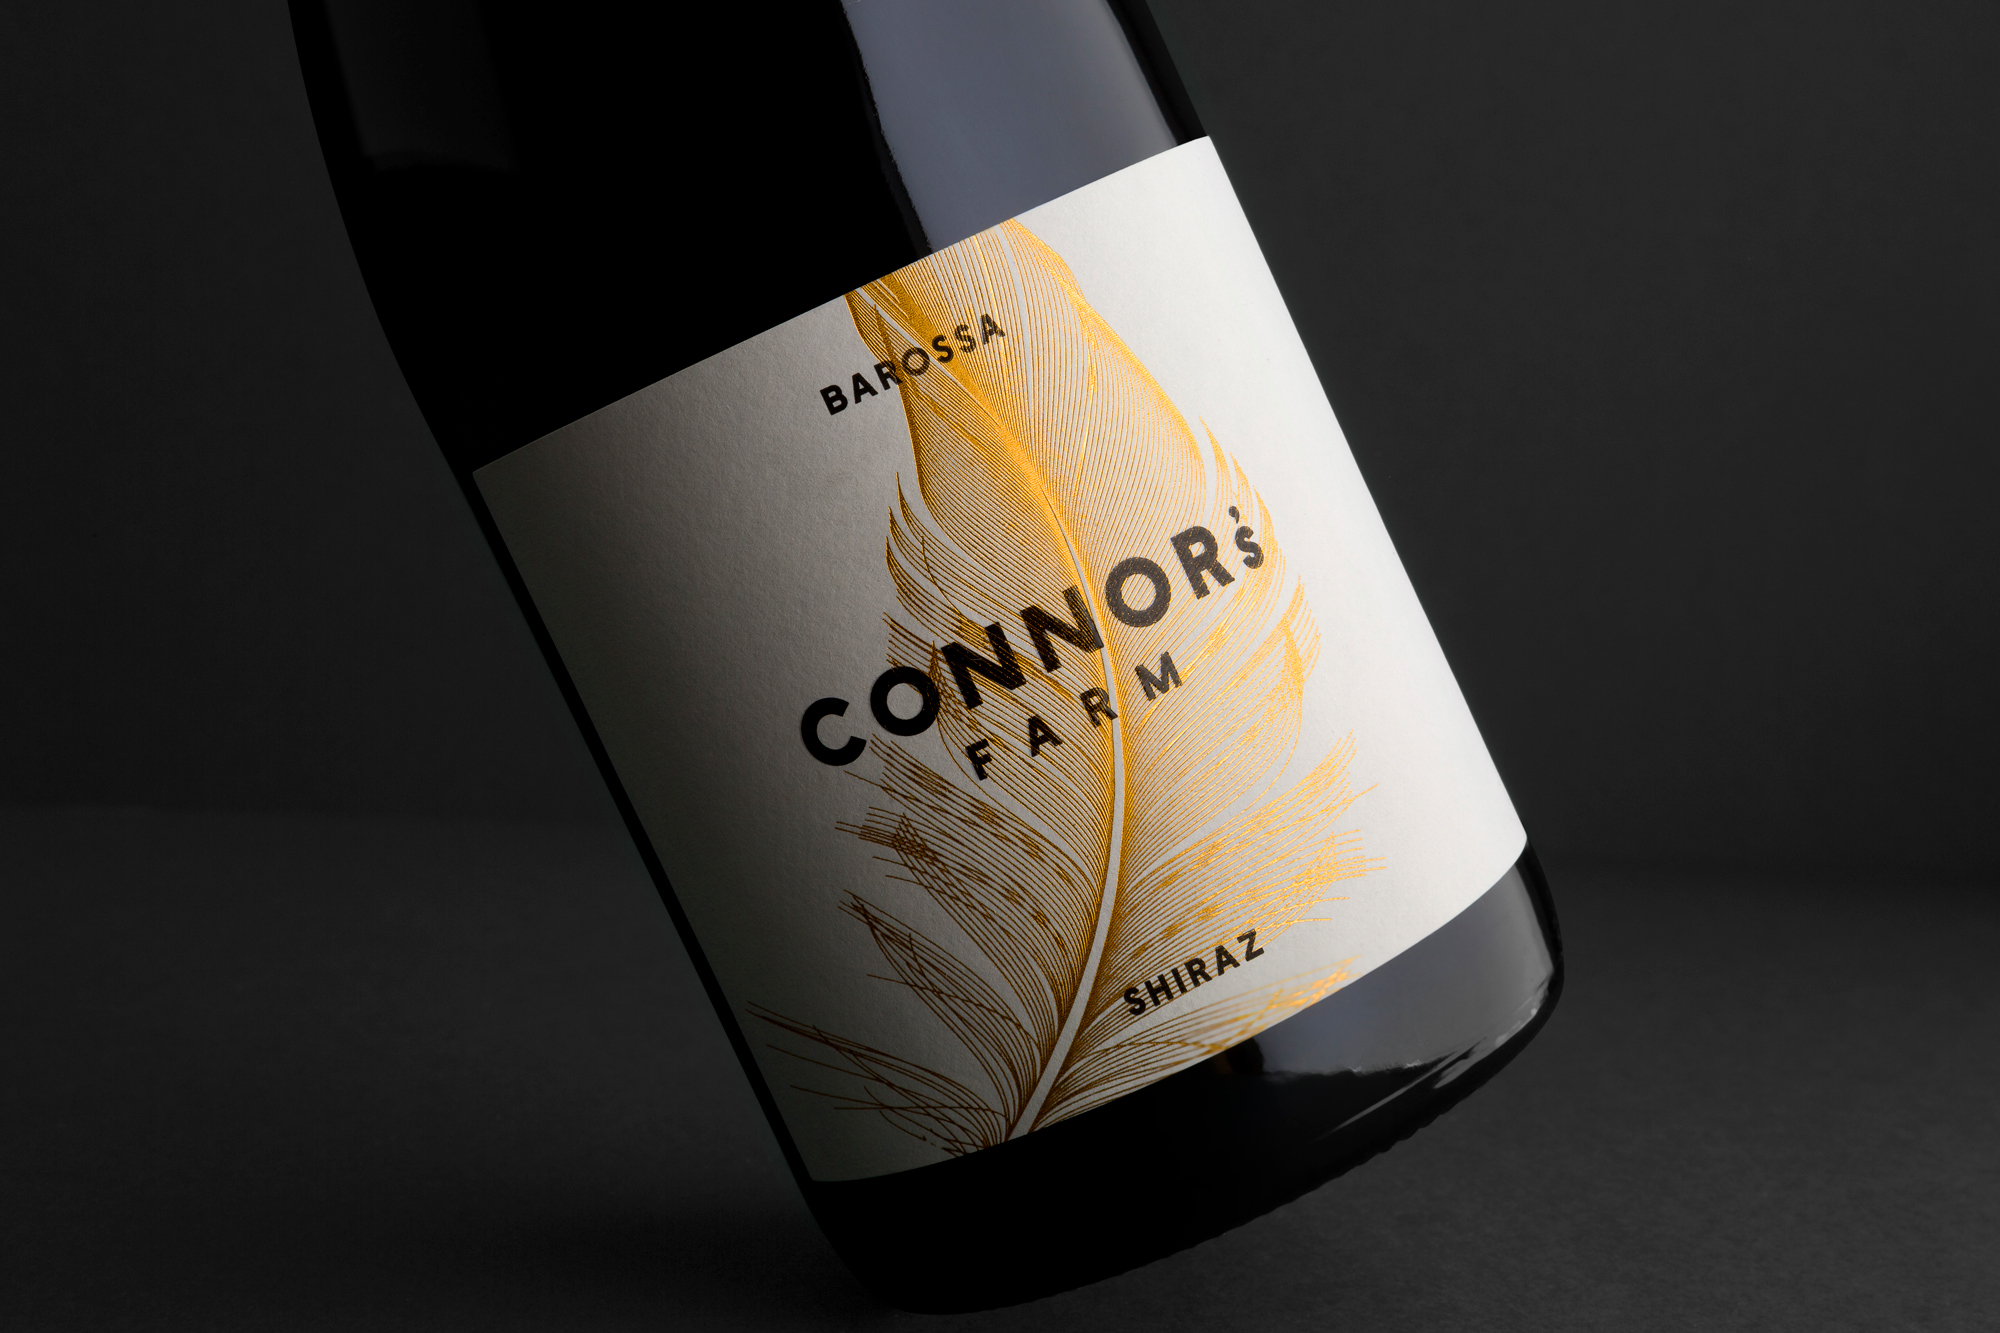 Connor's Farm Wines Packaging Design – South Australia